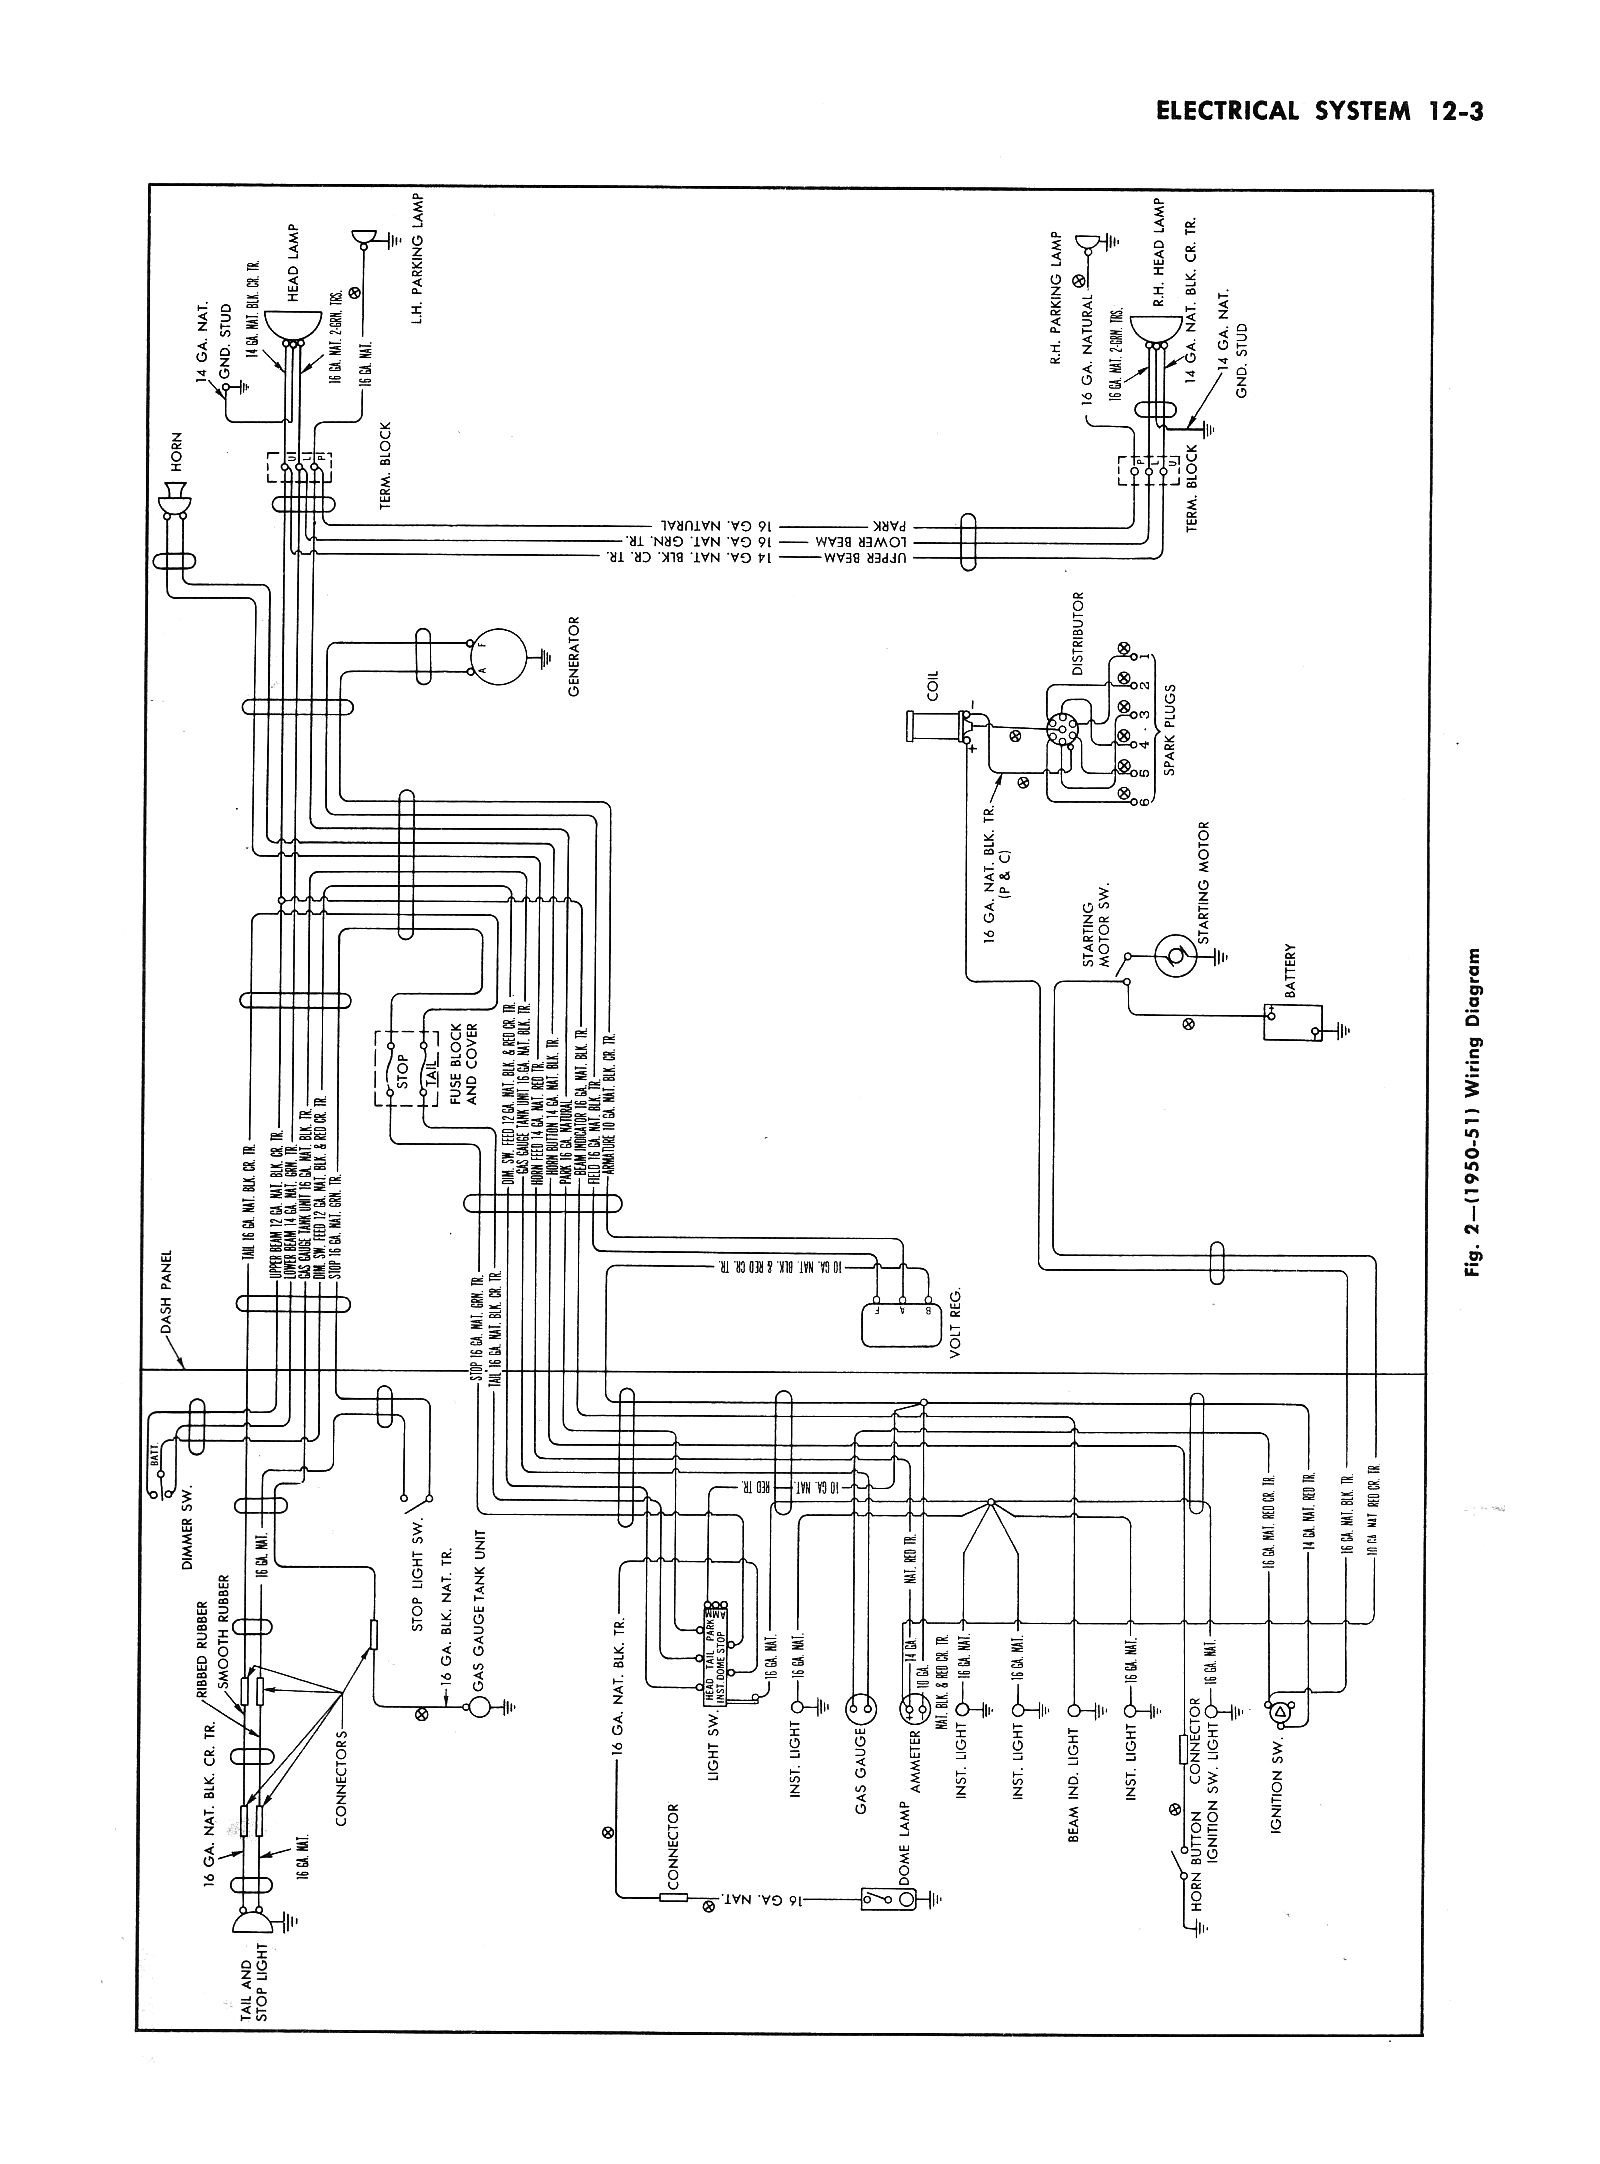 Chevy Wiring diagrams on